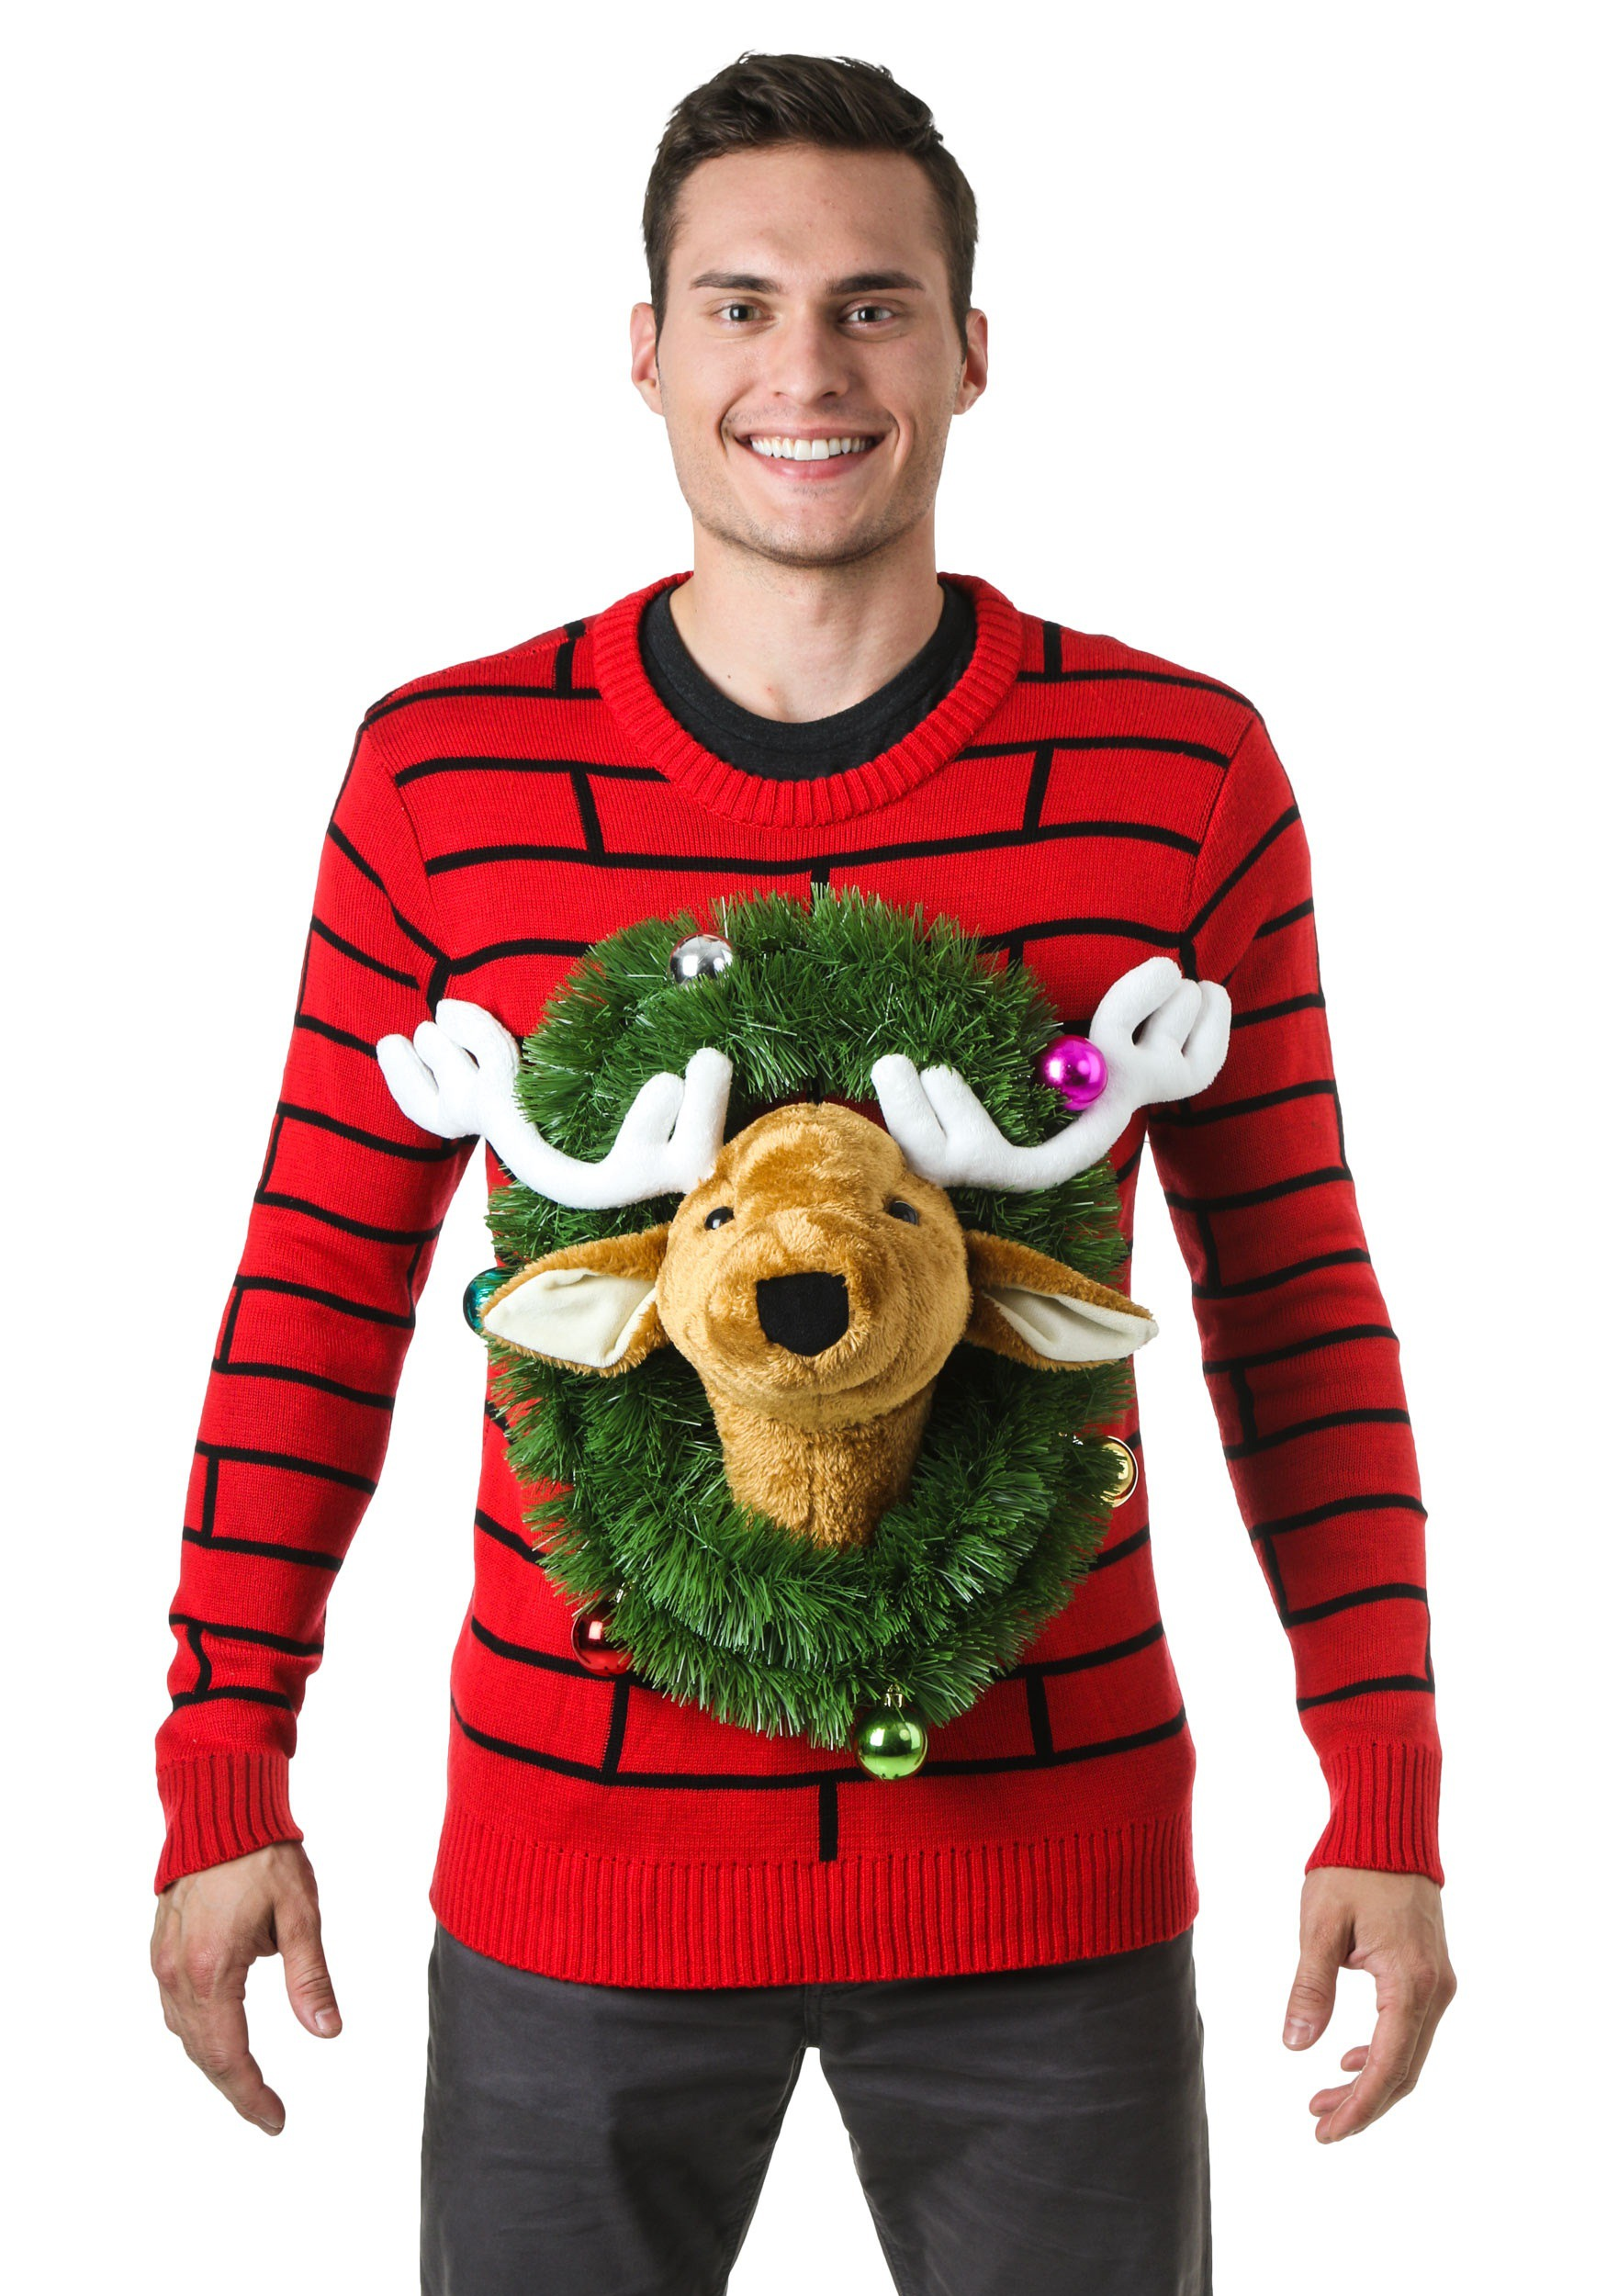 next in gallery back to top - Best Place To Buy Ugly Christmas Sweaters